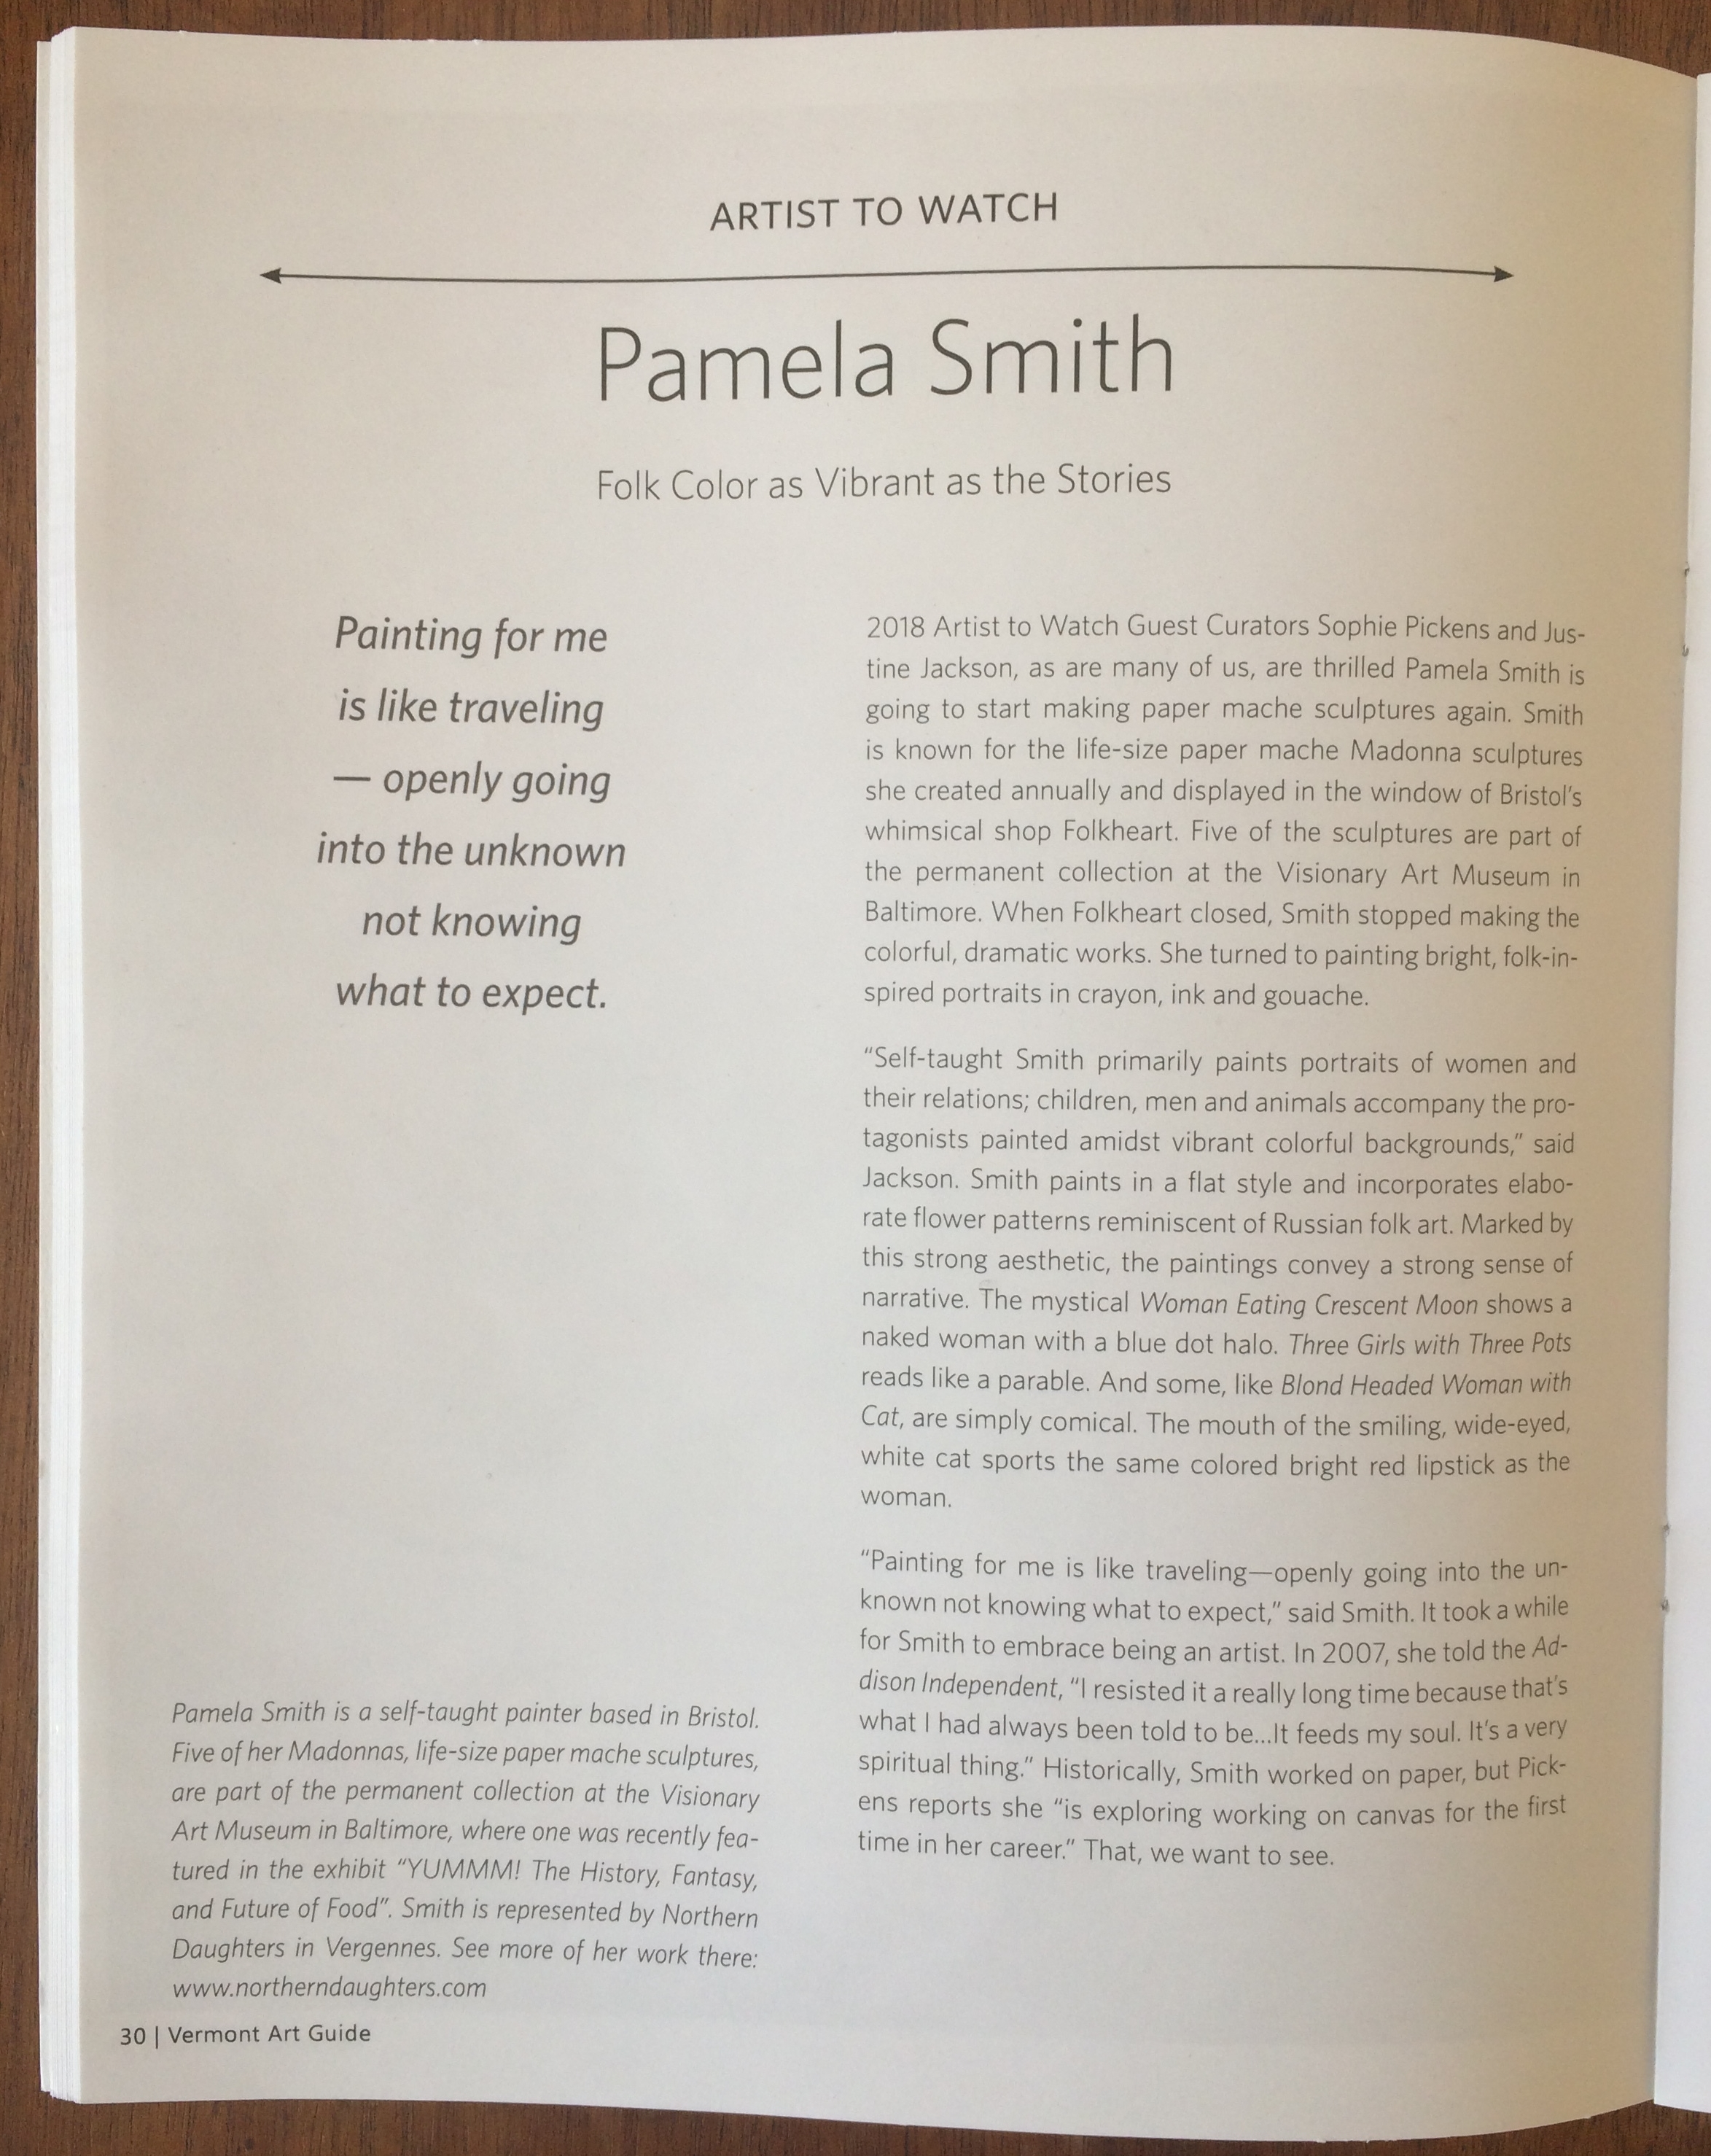 Pamela Smith Vermont Art Guide